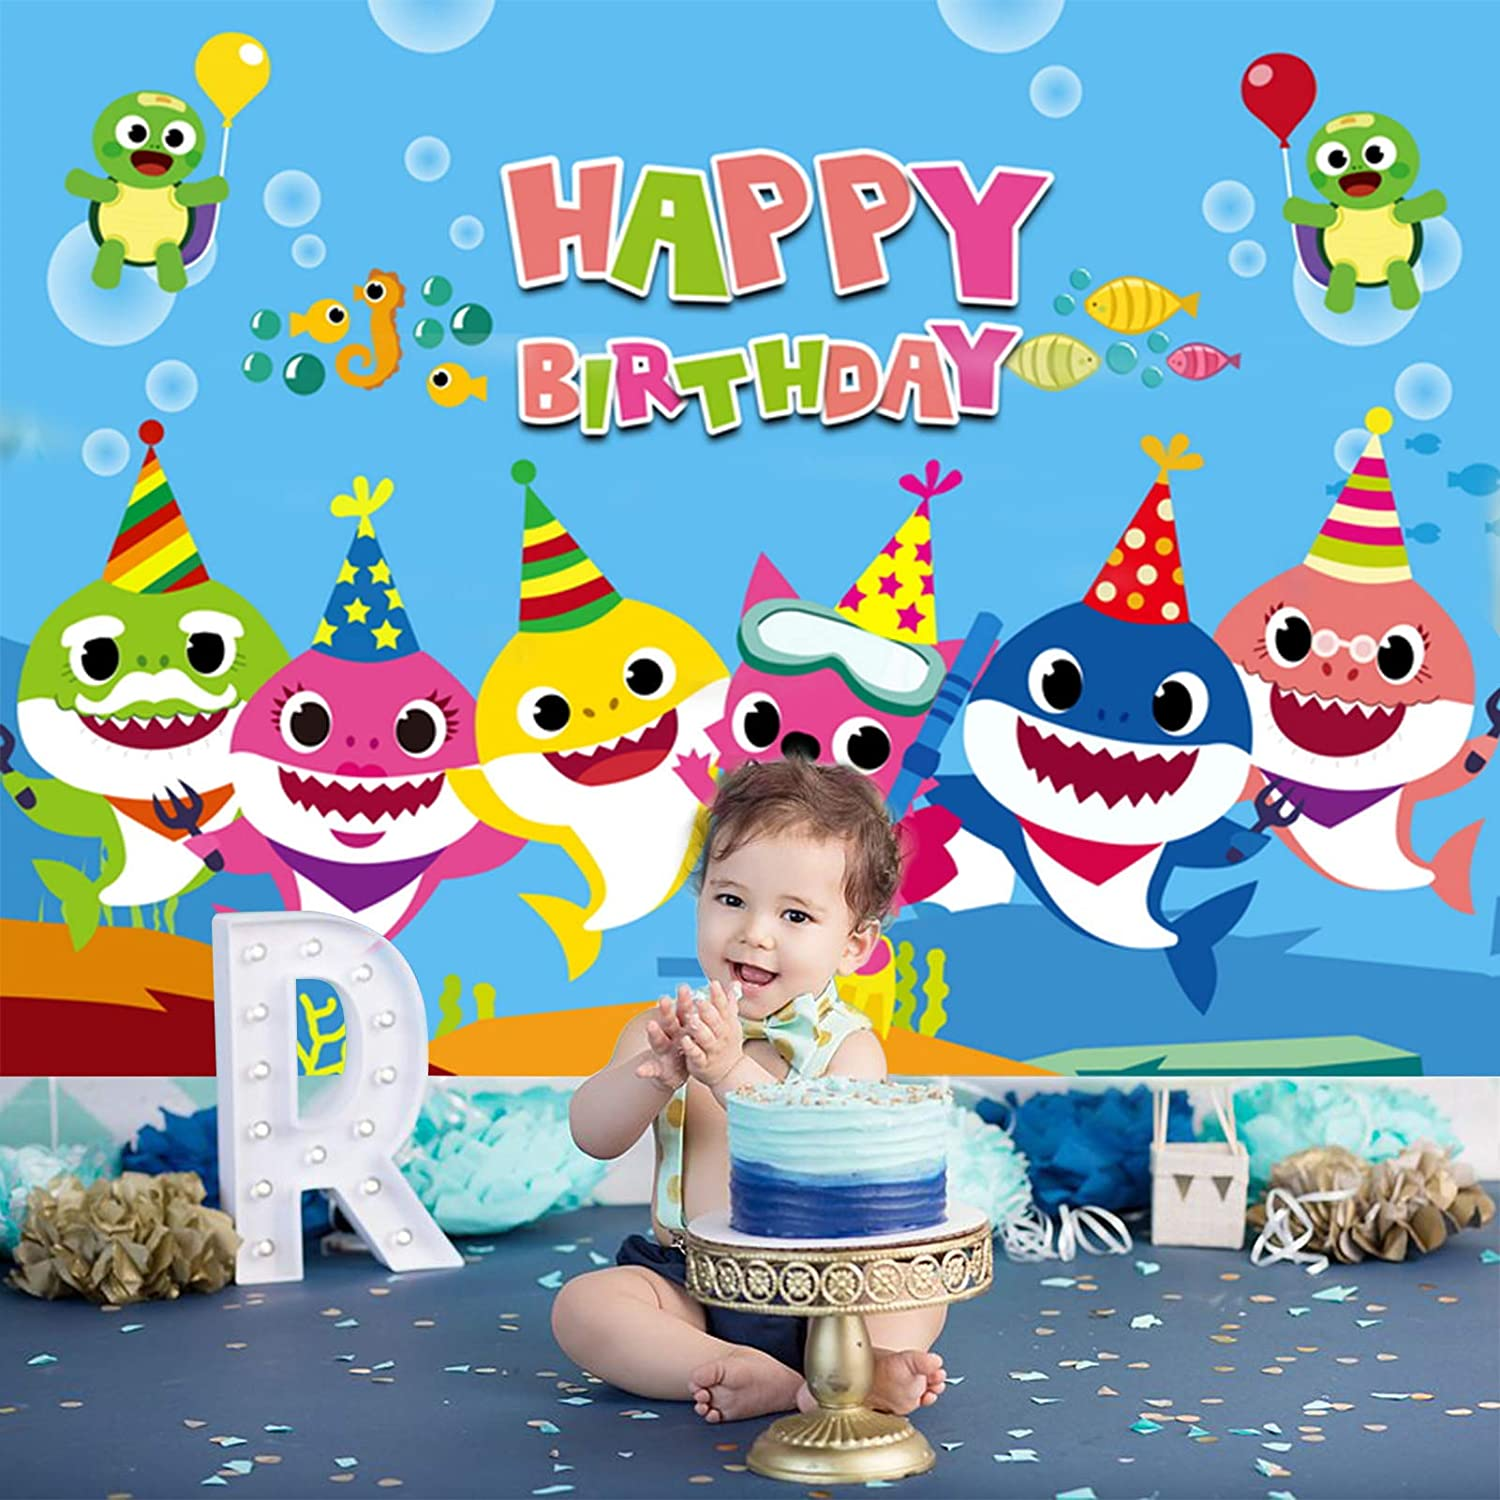 Baby Shark Backdrop Birthday Party Decorations Background Undersea World Shark Theme Party Supplies Banner Cake Table Decor Vinyl Photography Backdrop for Kids Girls Boys 5x3ft